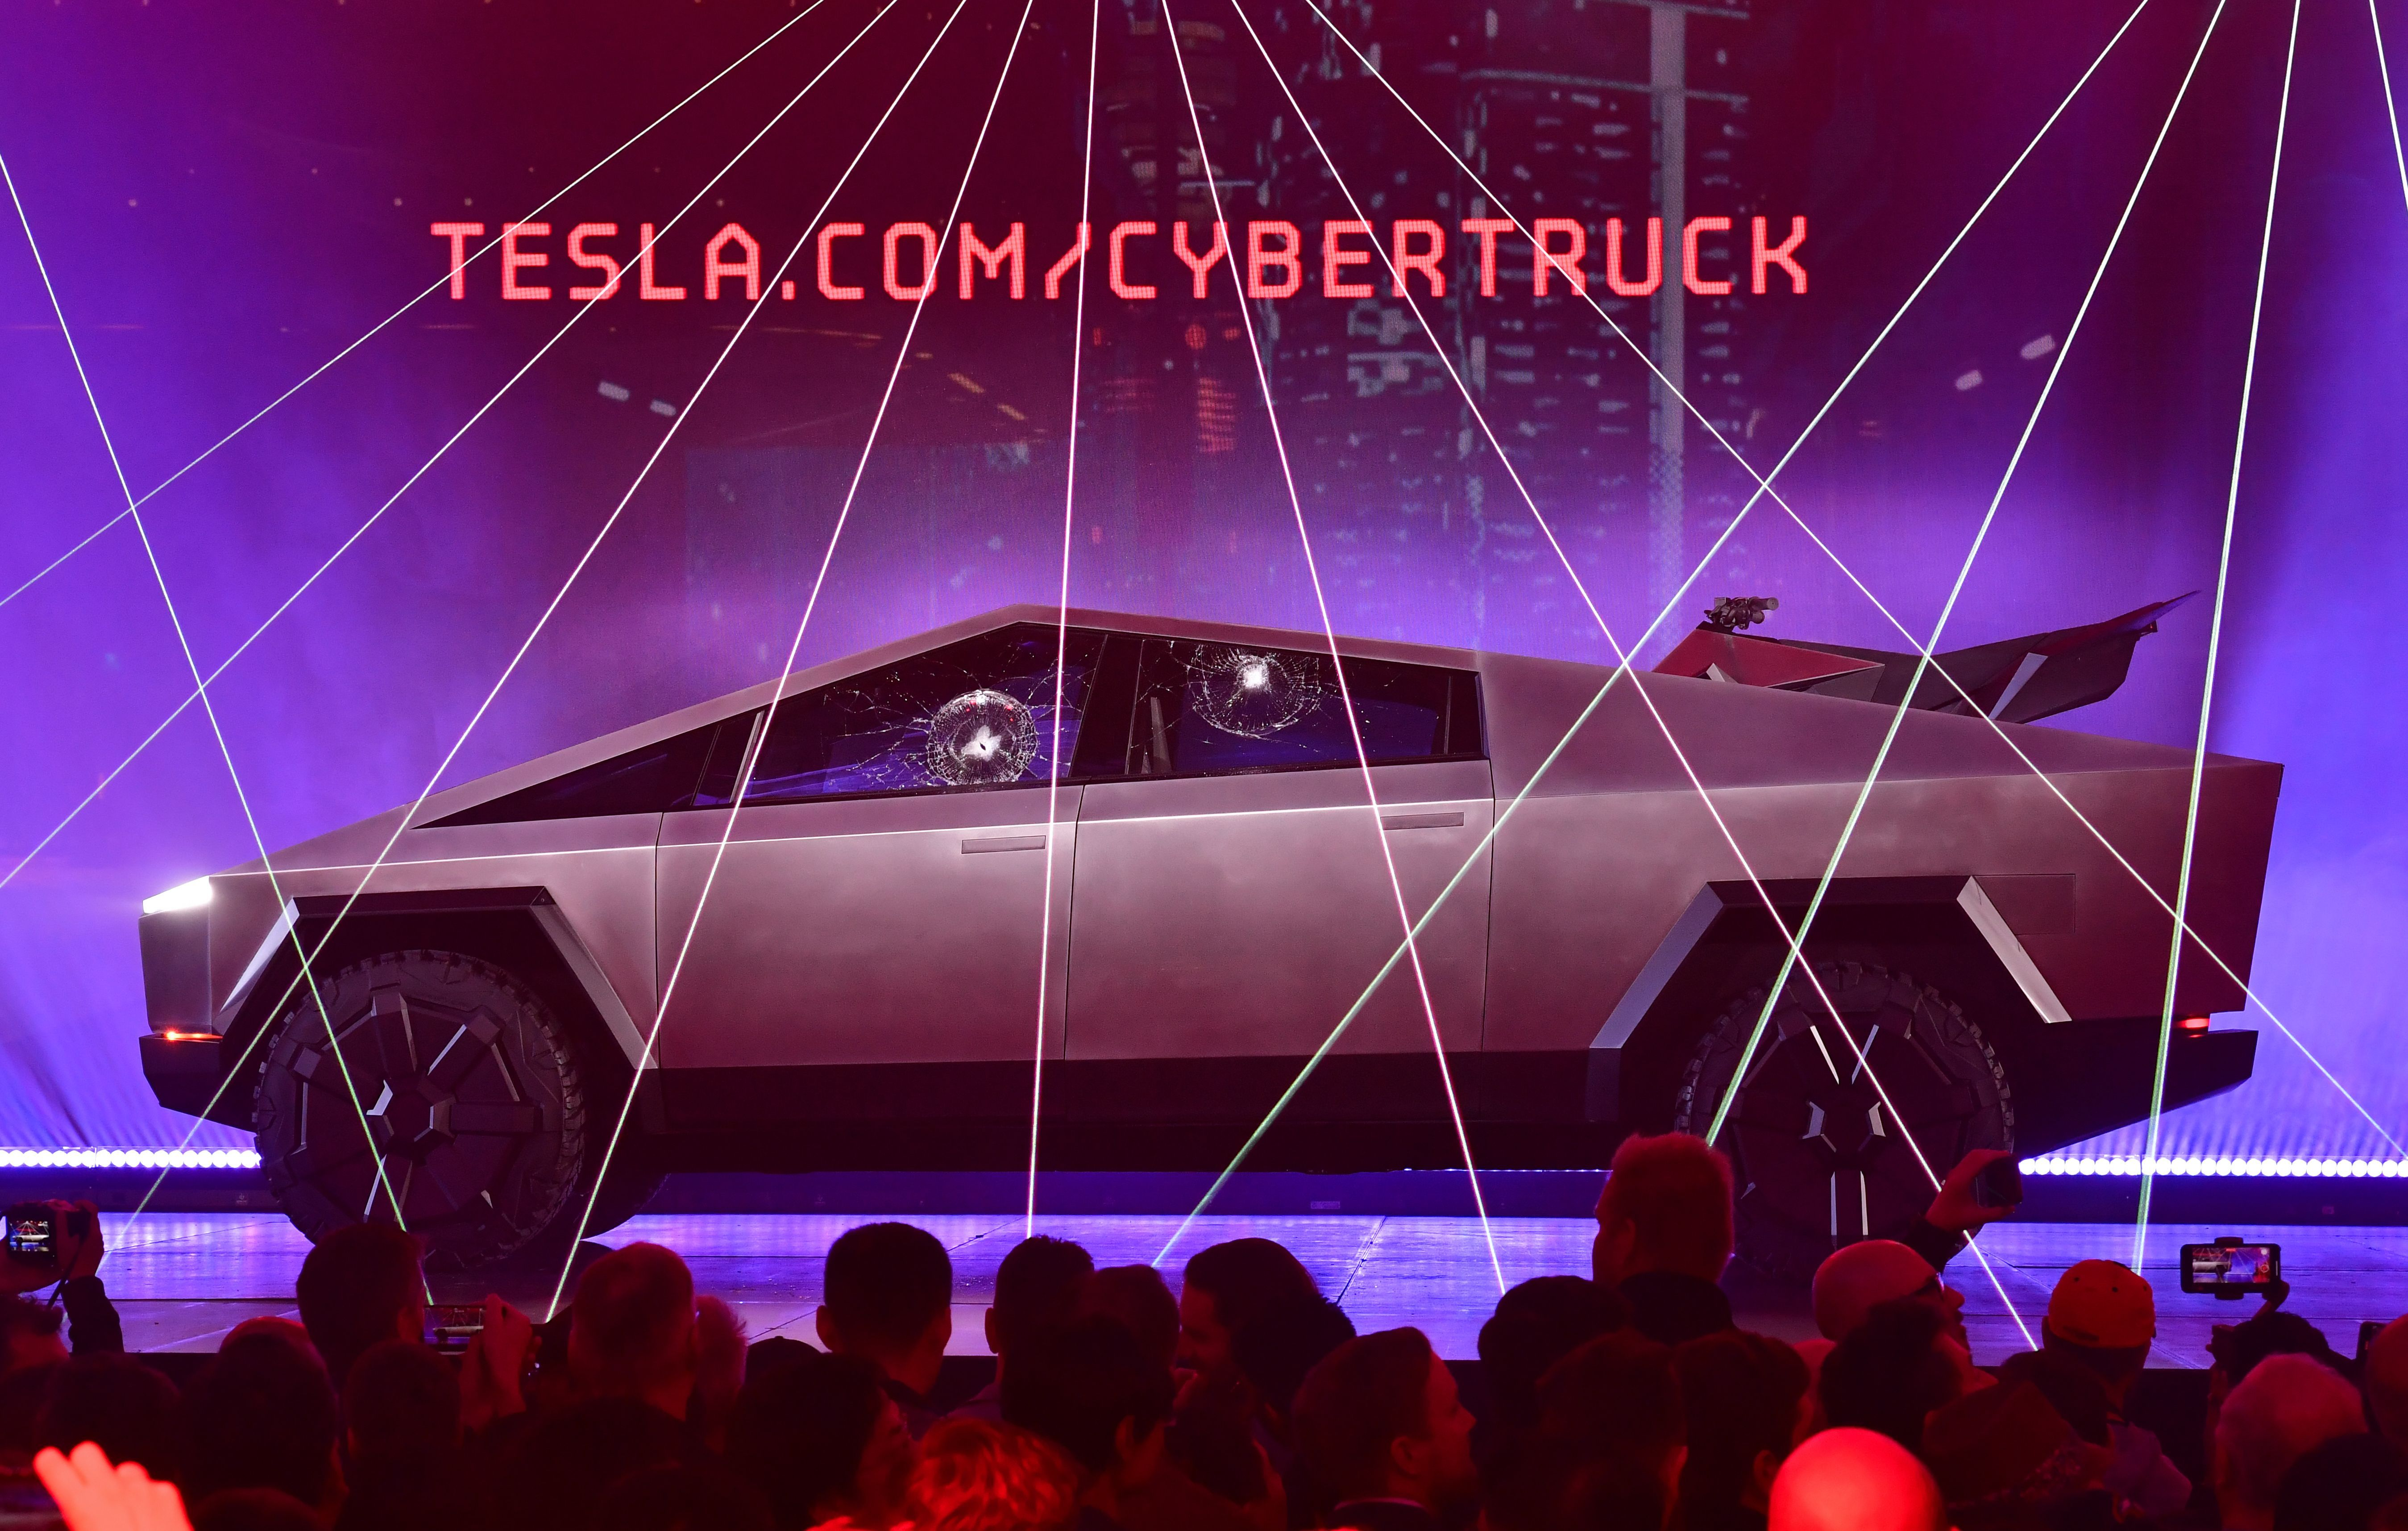 It Would Take Years to Build All of Tesla's Cybertruck Reservations, Musk Says